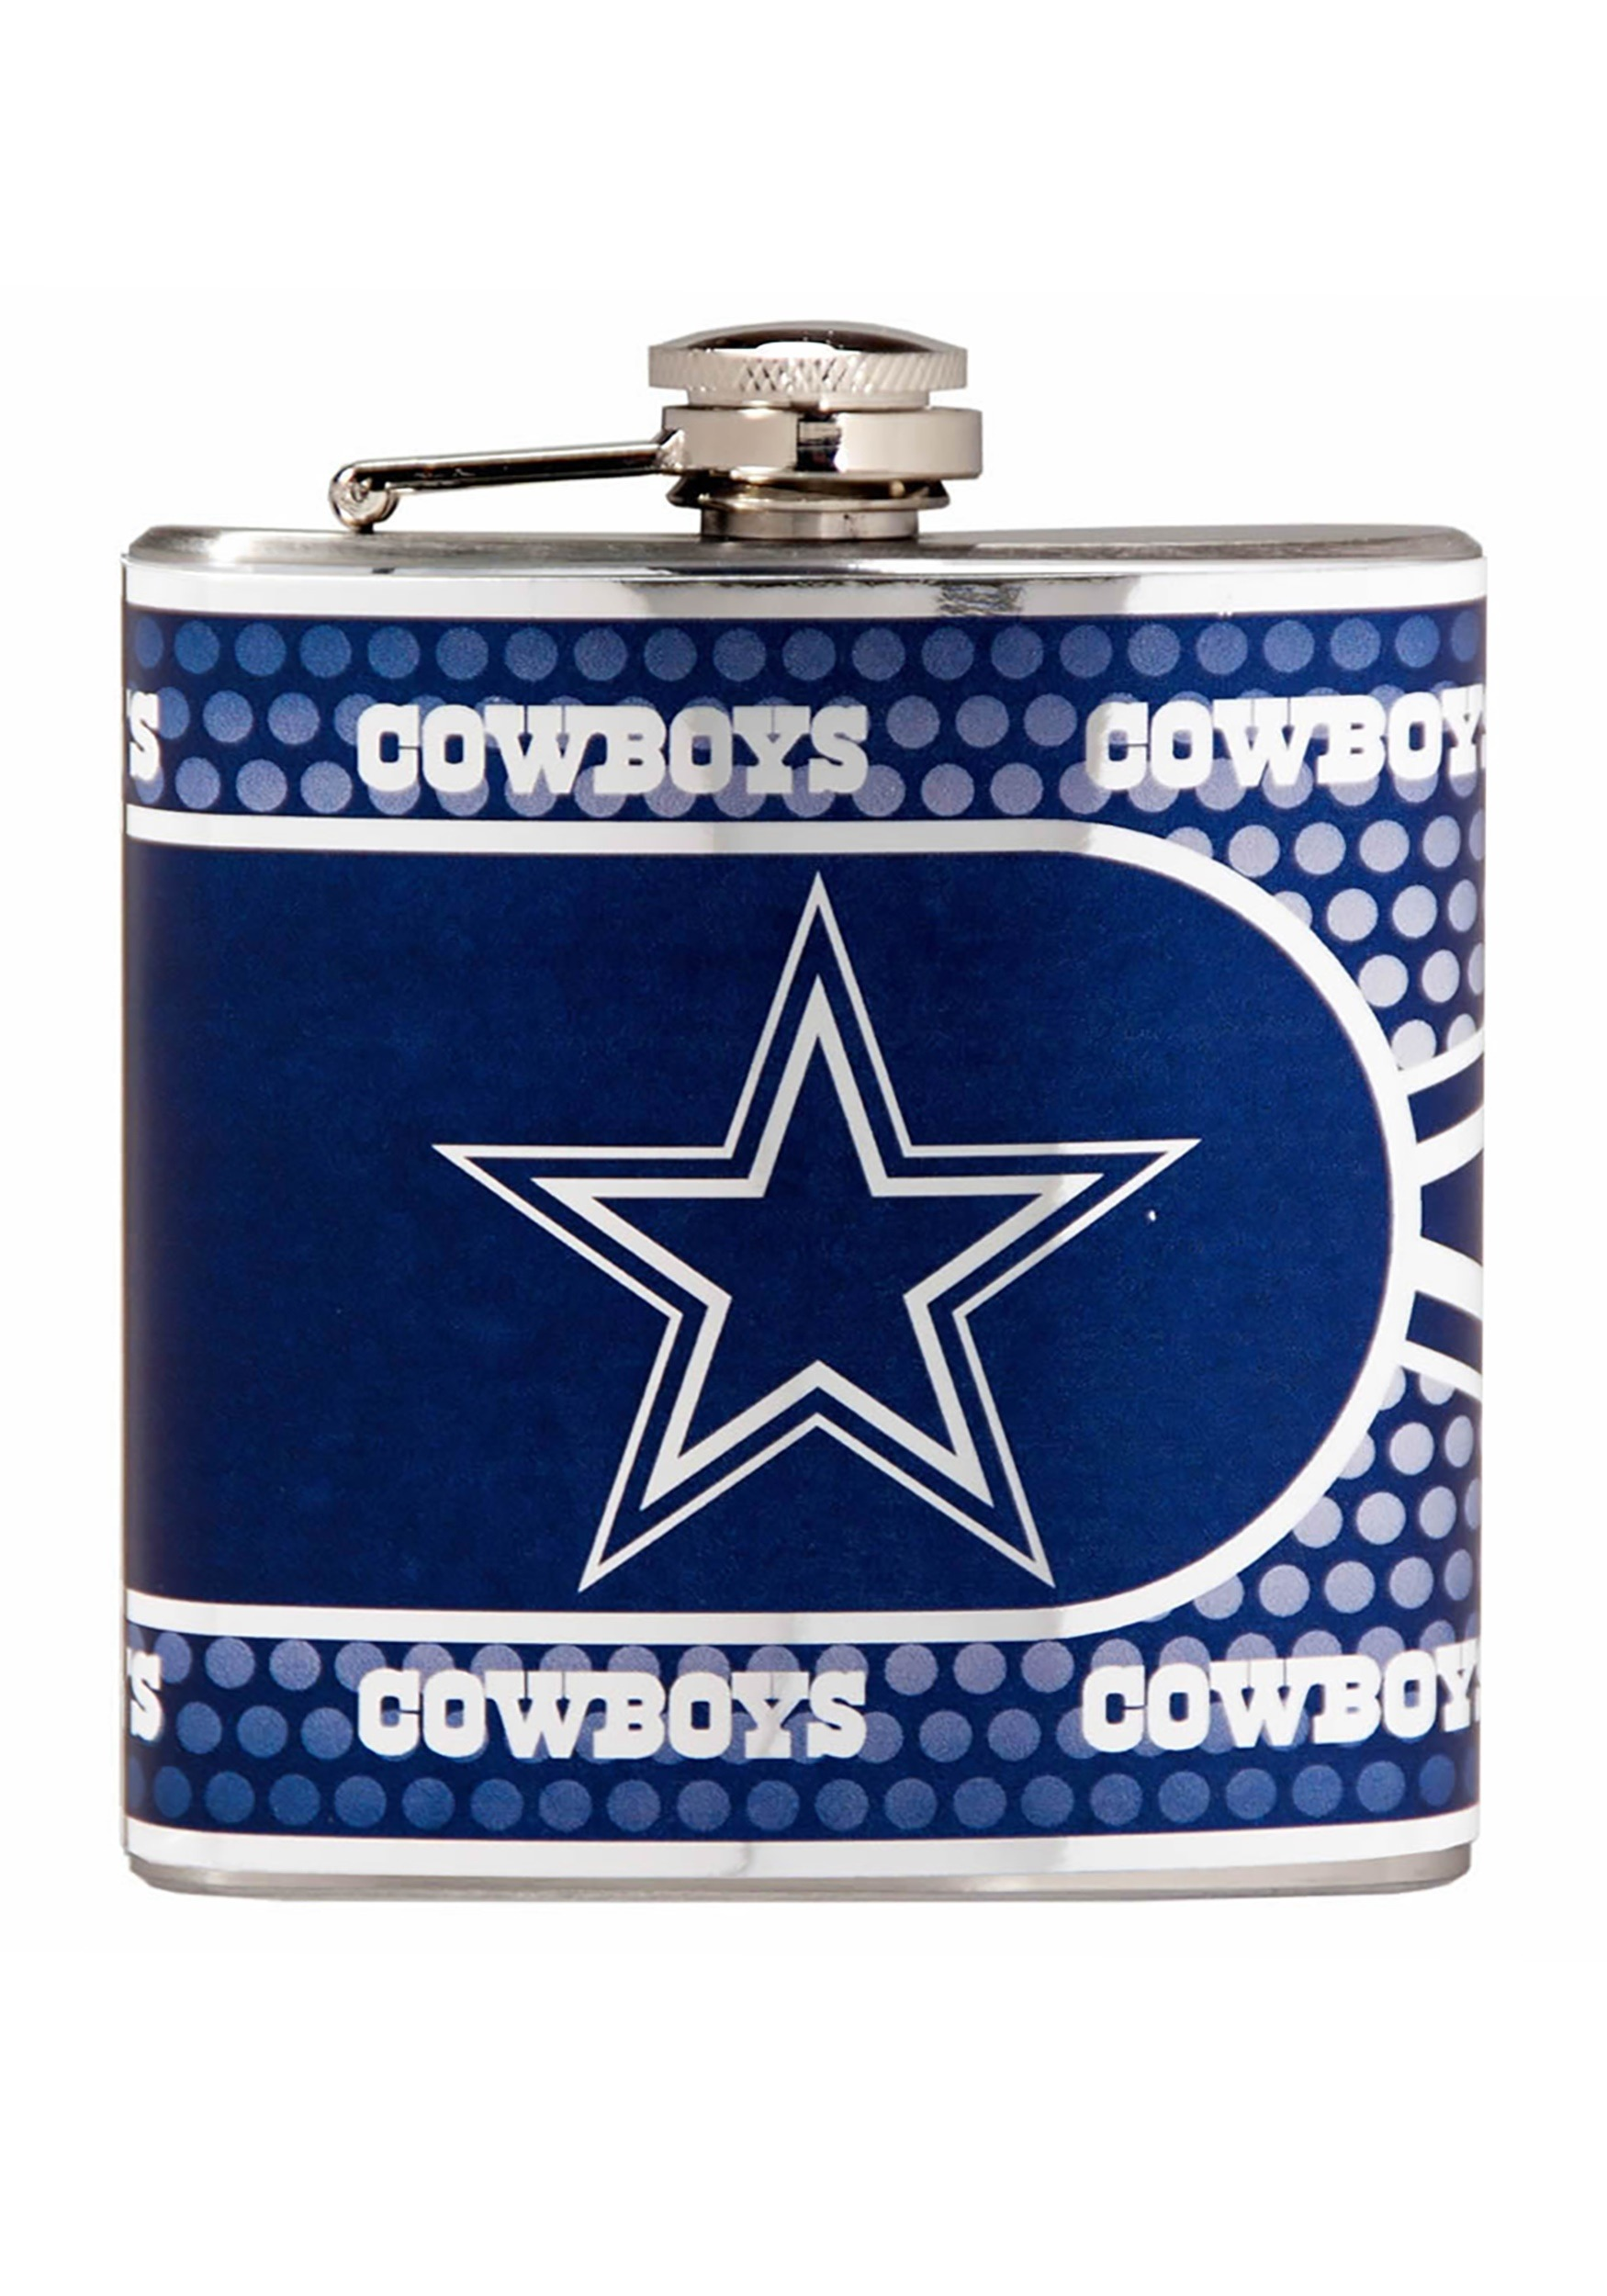 Dallas Cowboys NFL 6 oz. Stainless Steel Flask w/ Metallic Graphics